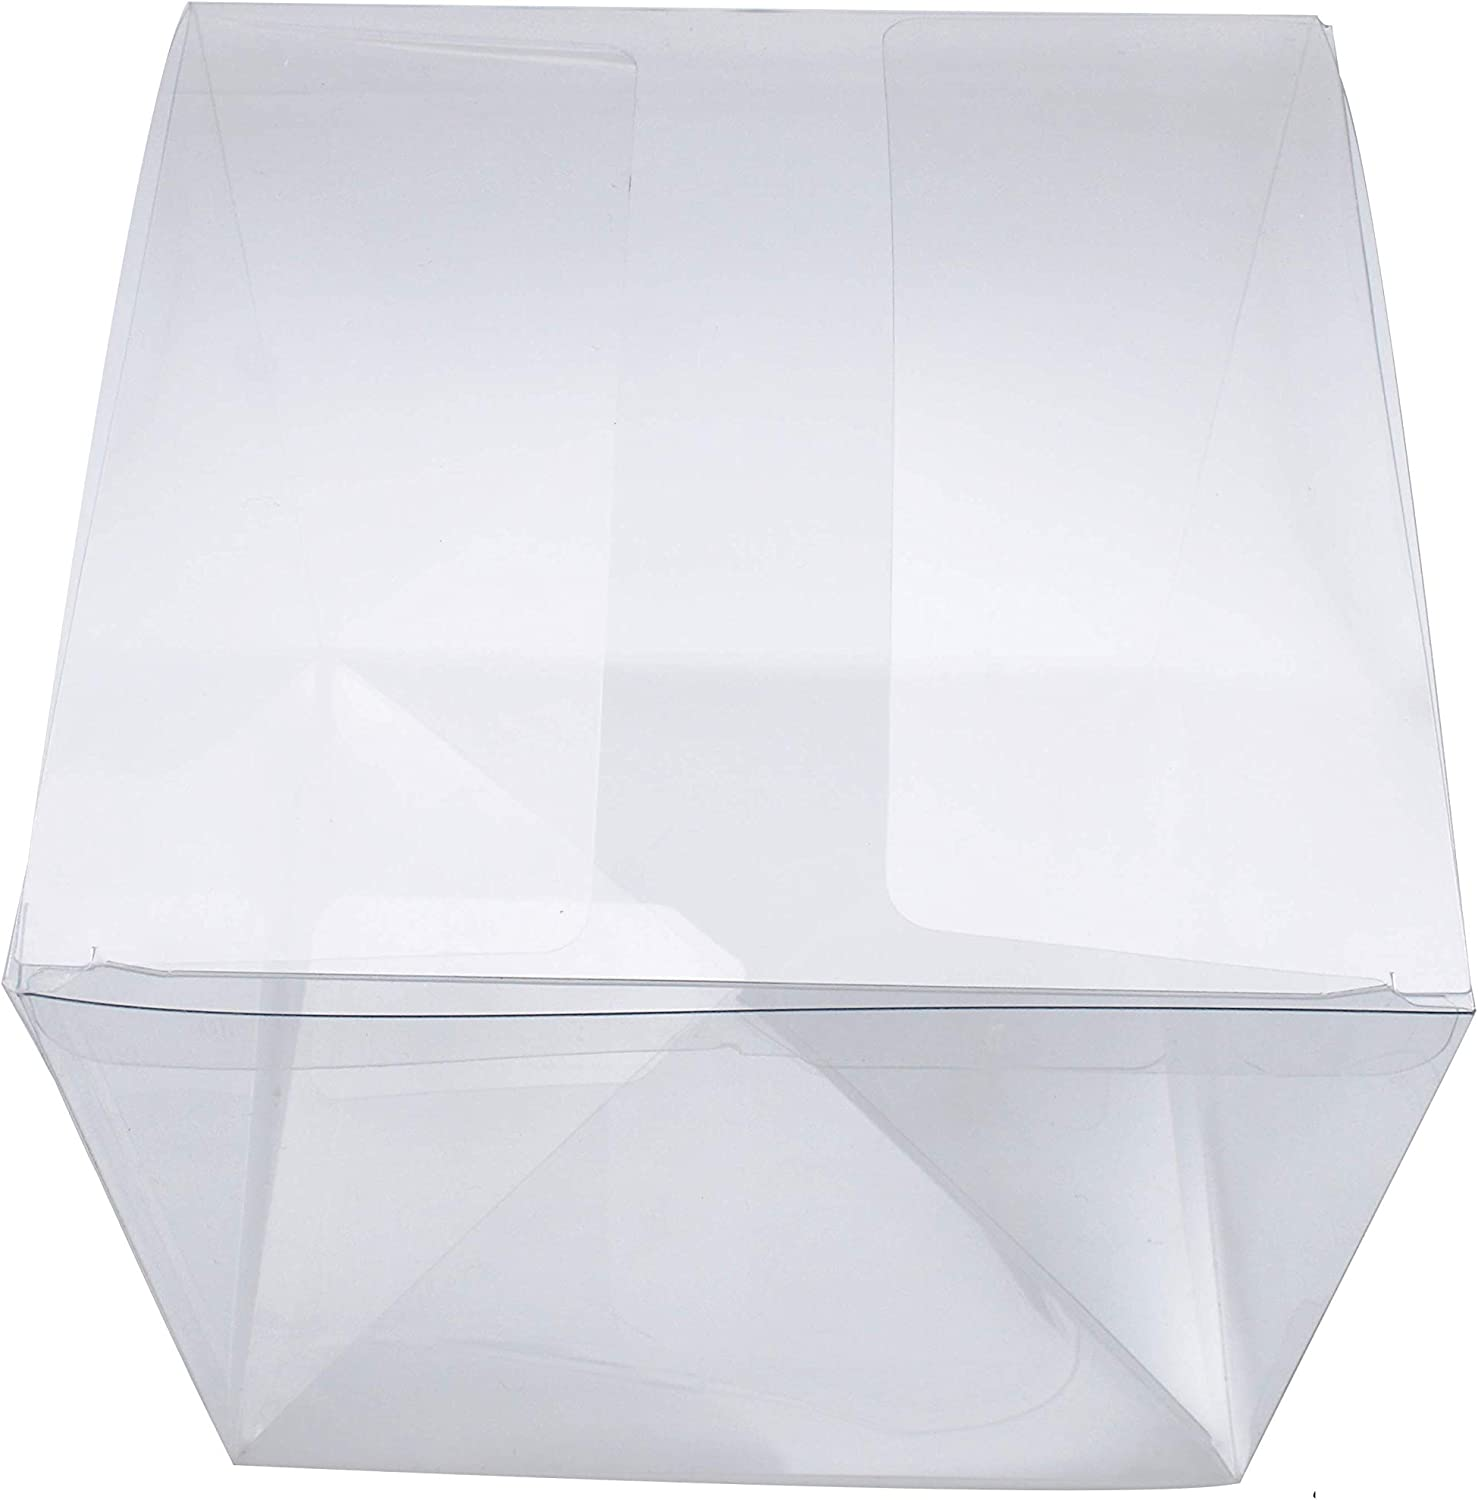 """HOMECOMFORT 10 PCS Easy Pop N' Lock Crystal Clear Boxes 6""""x 6""""x 6"""" Transparent PET Gift Box for Wedding, Party and Baby Showers Favors"""